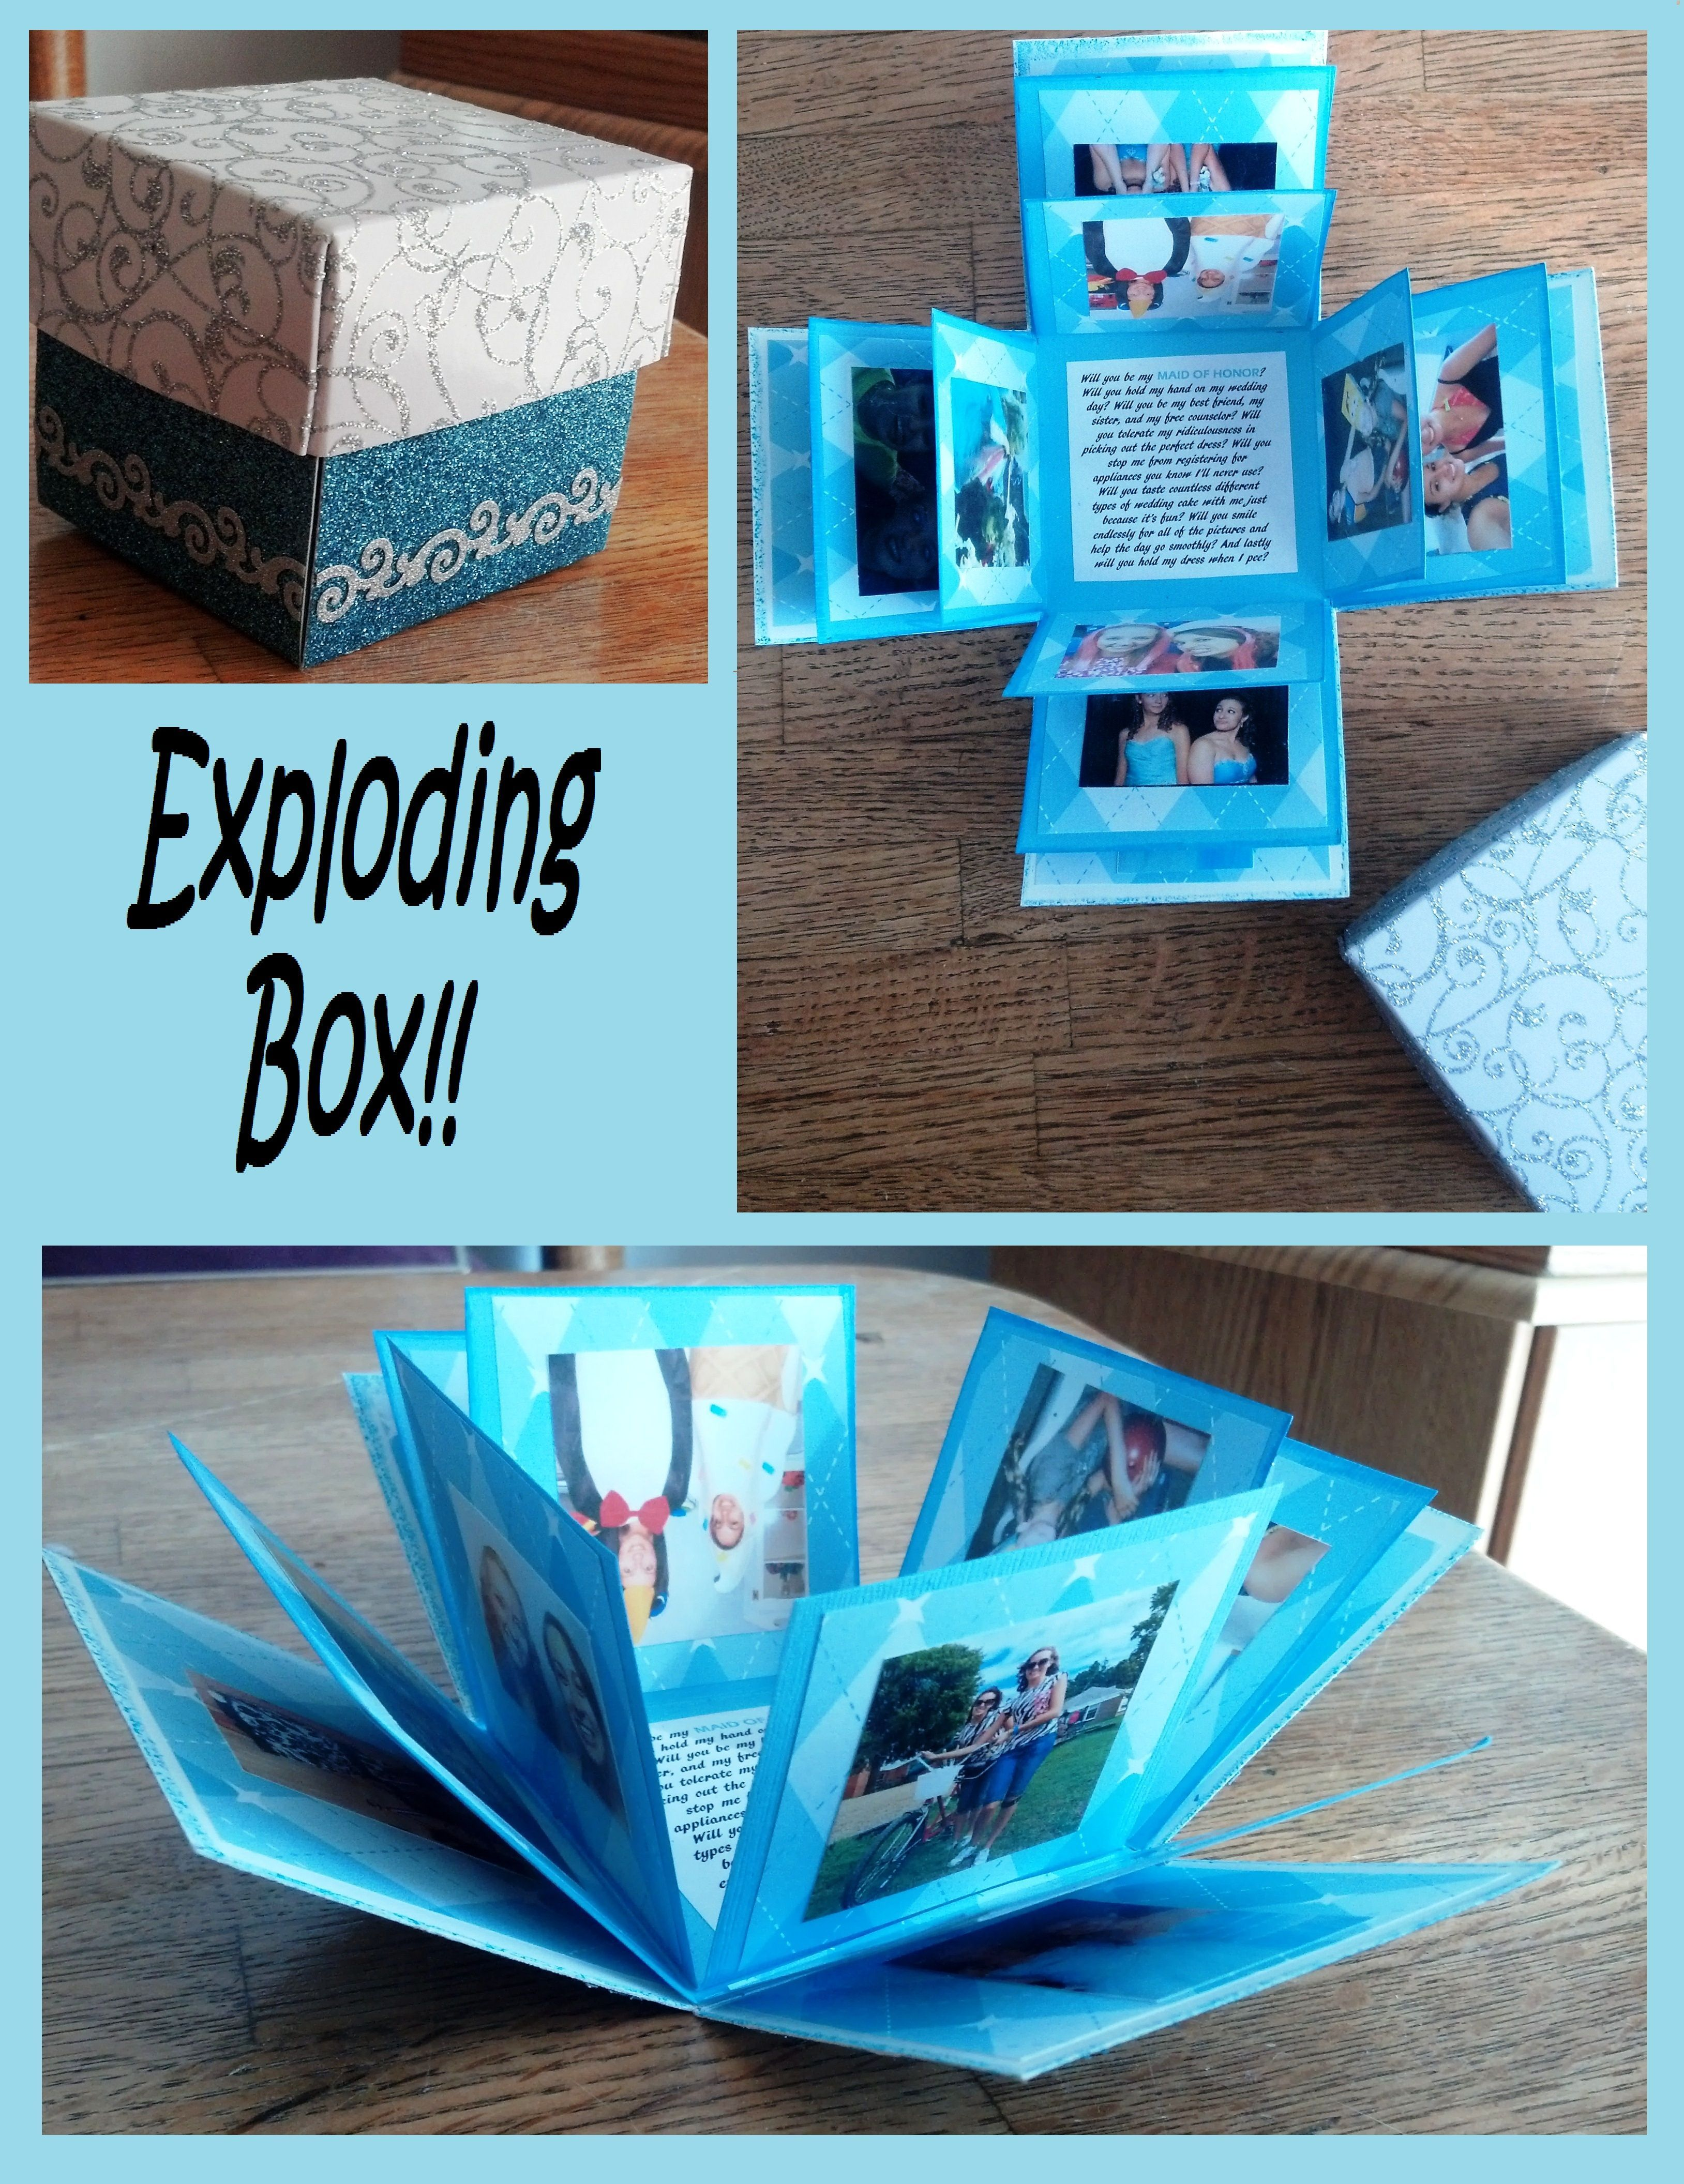 Http Www Echopaul Com Lovely Exploding Photo Box Made One Of These For My German Exchange Partner Last Diy Birthday Gifts Diy Birthday Diy Gift